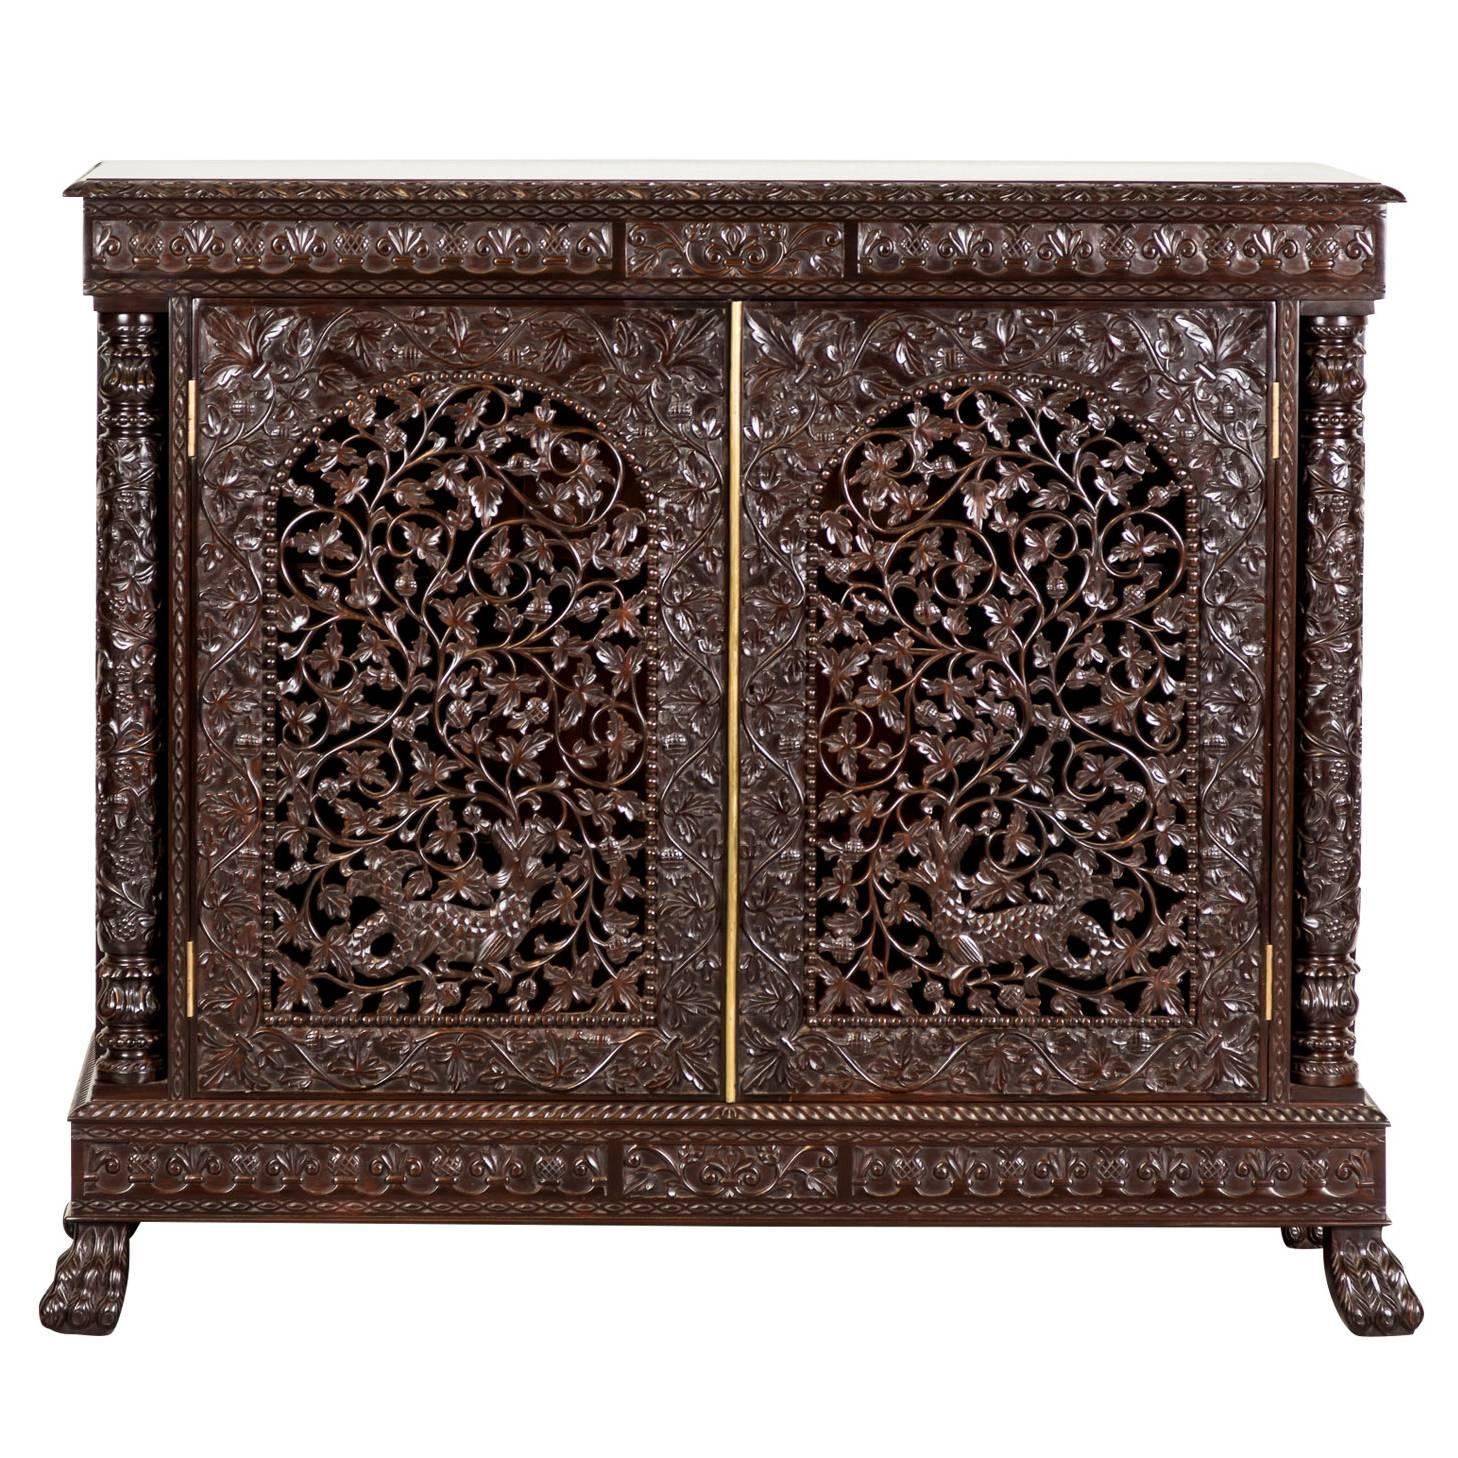 Antique Anglo-Indian or British Colonial Rosewood Cabinet For Sale at  1stdibs - Antique Anglo-Indian Or British Colonial Rosewood Cabinet For Sale